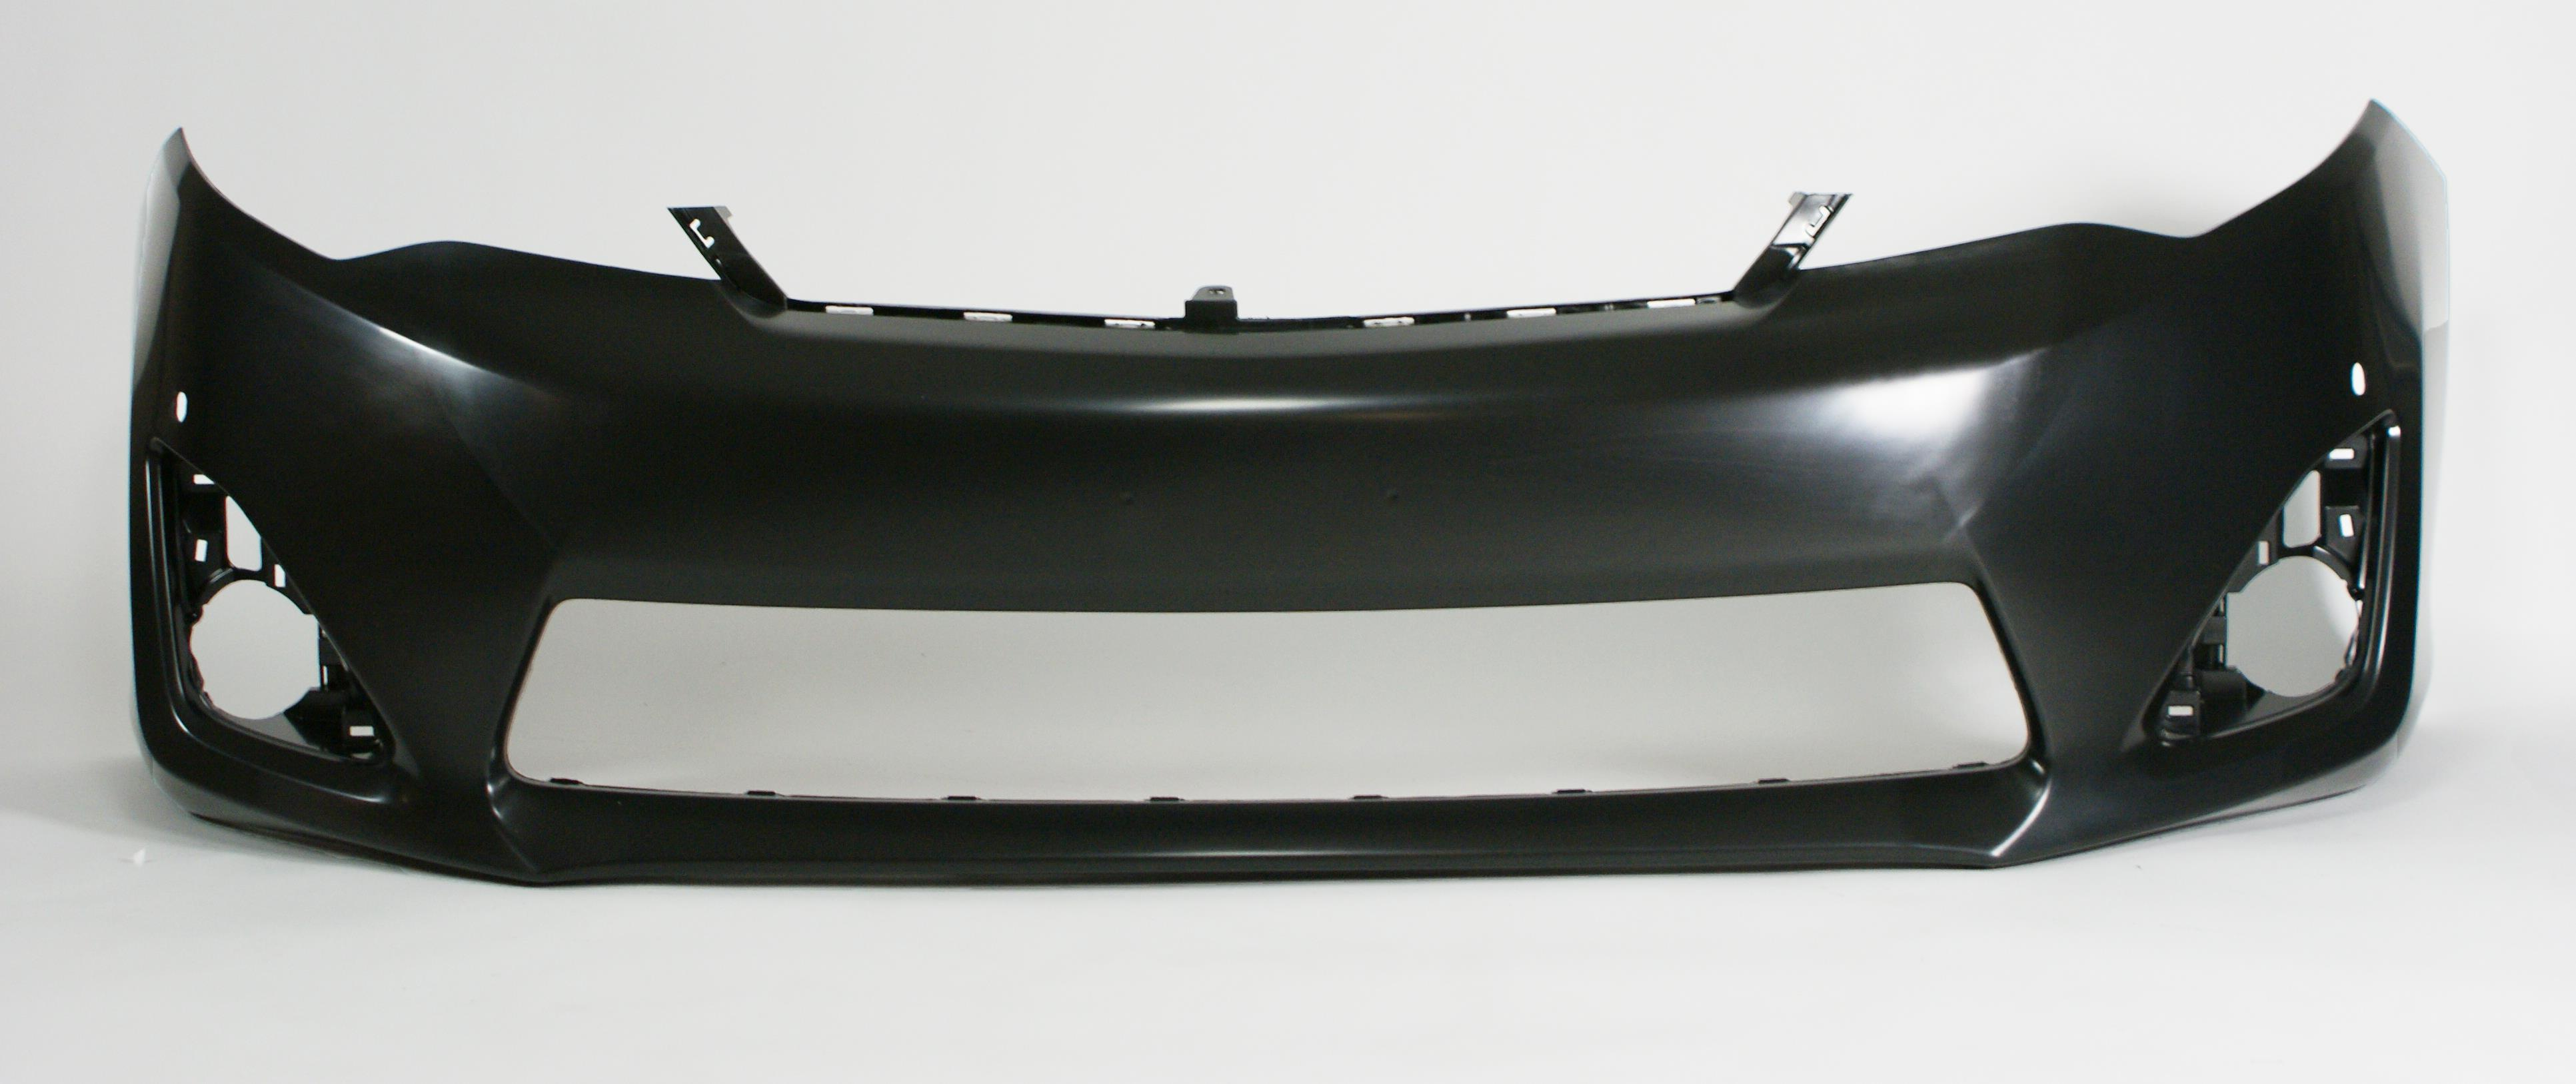 2013 Toyota Camry Cover  Front Bumper  Body  Interior